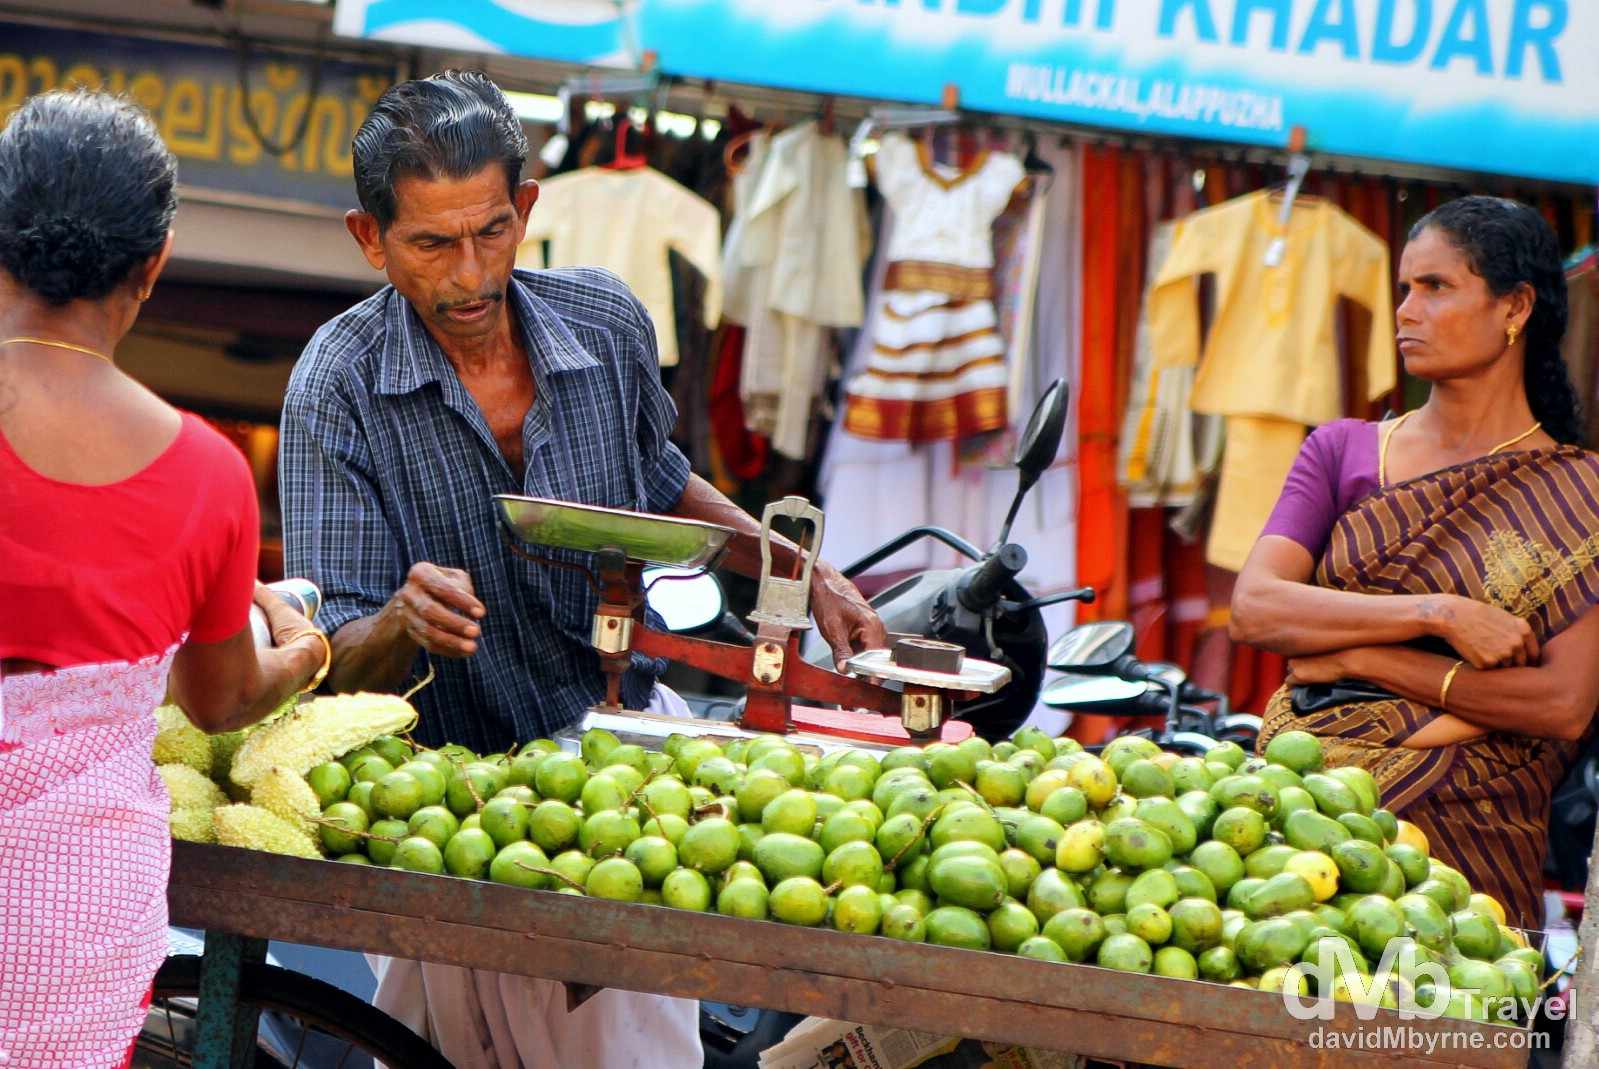 A stall on the streets of Alleppey, Kerala, India. September 17th 2012.